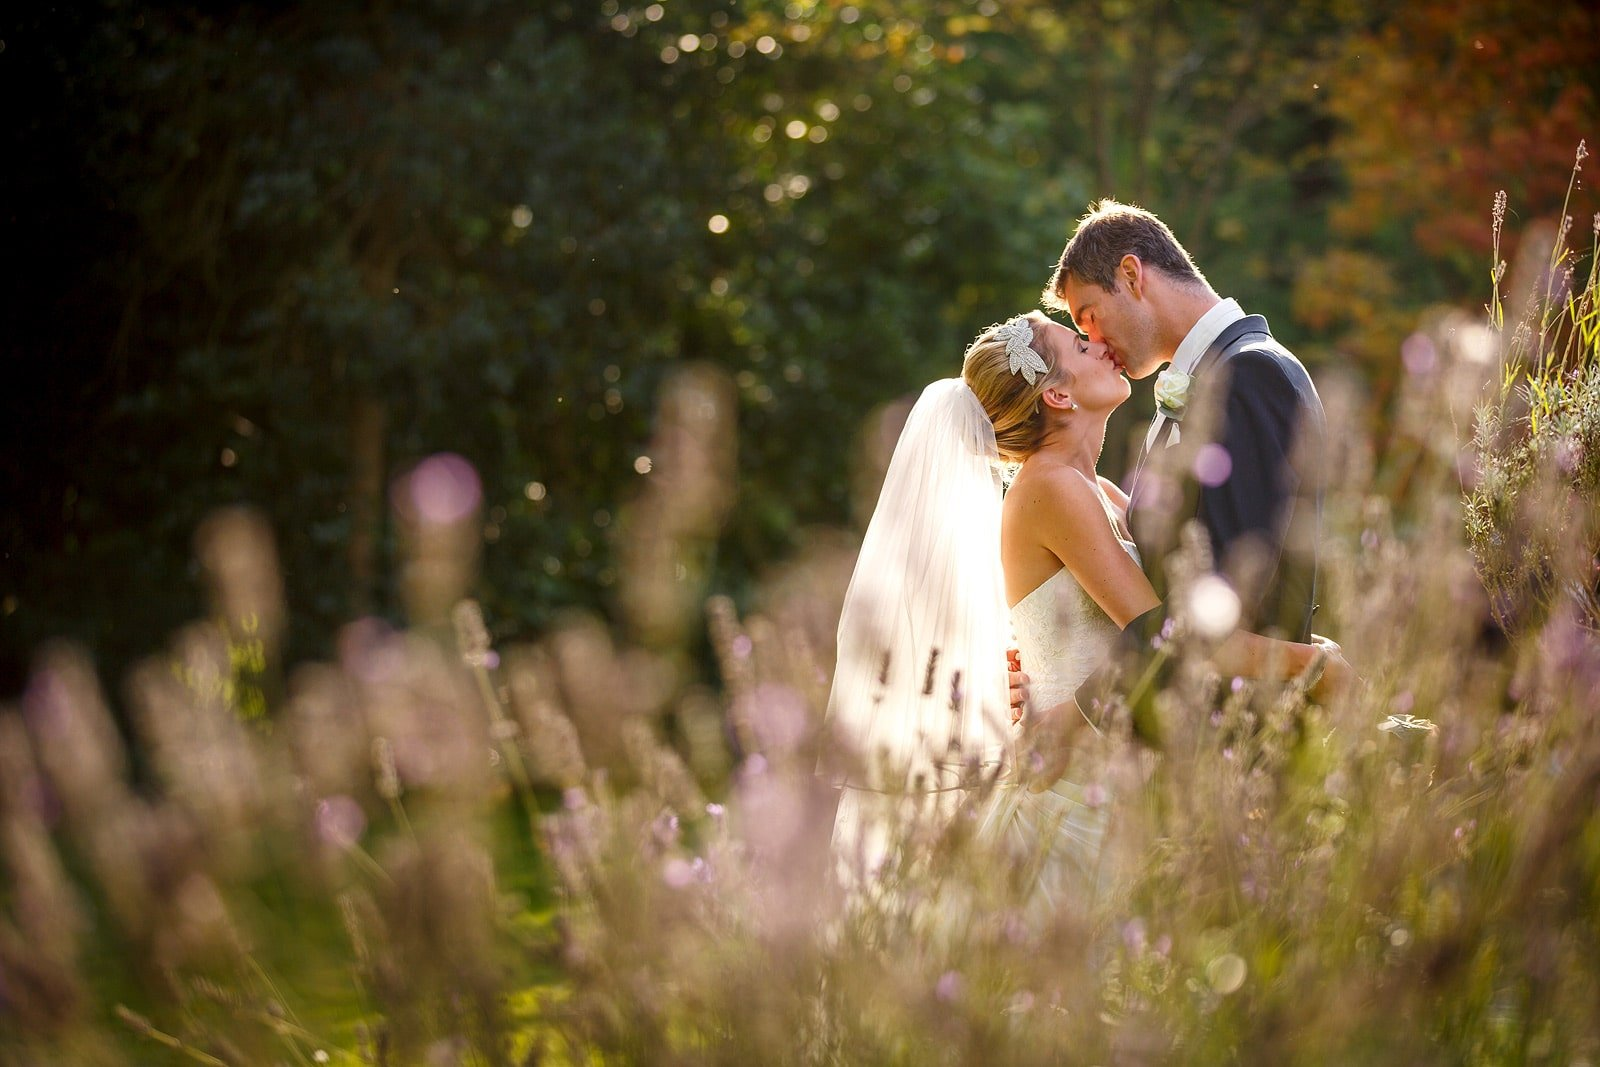 Nether Winchendon House wedding of Kelly and Aidan